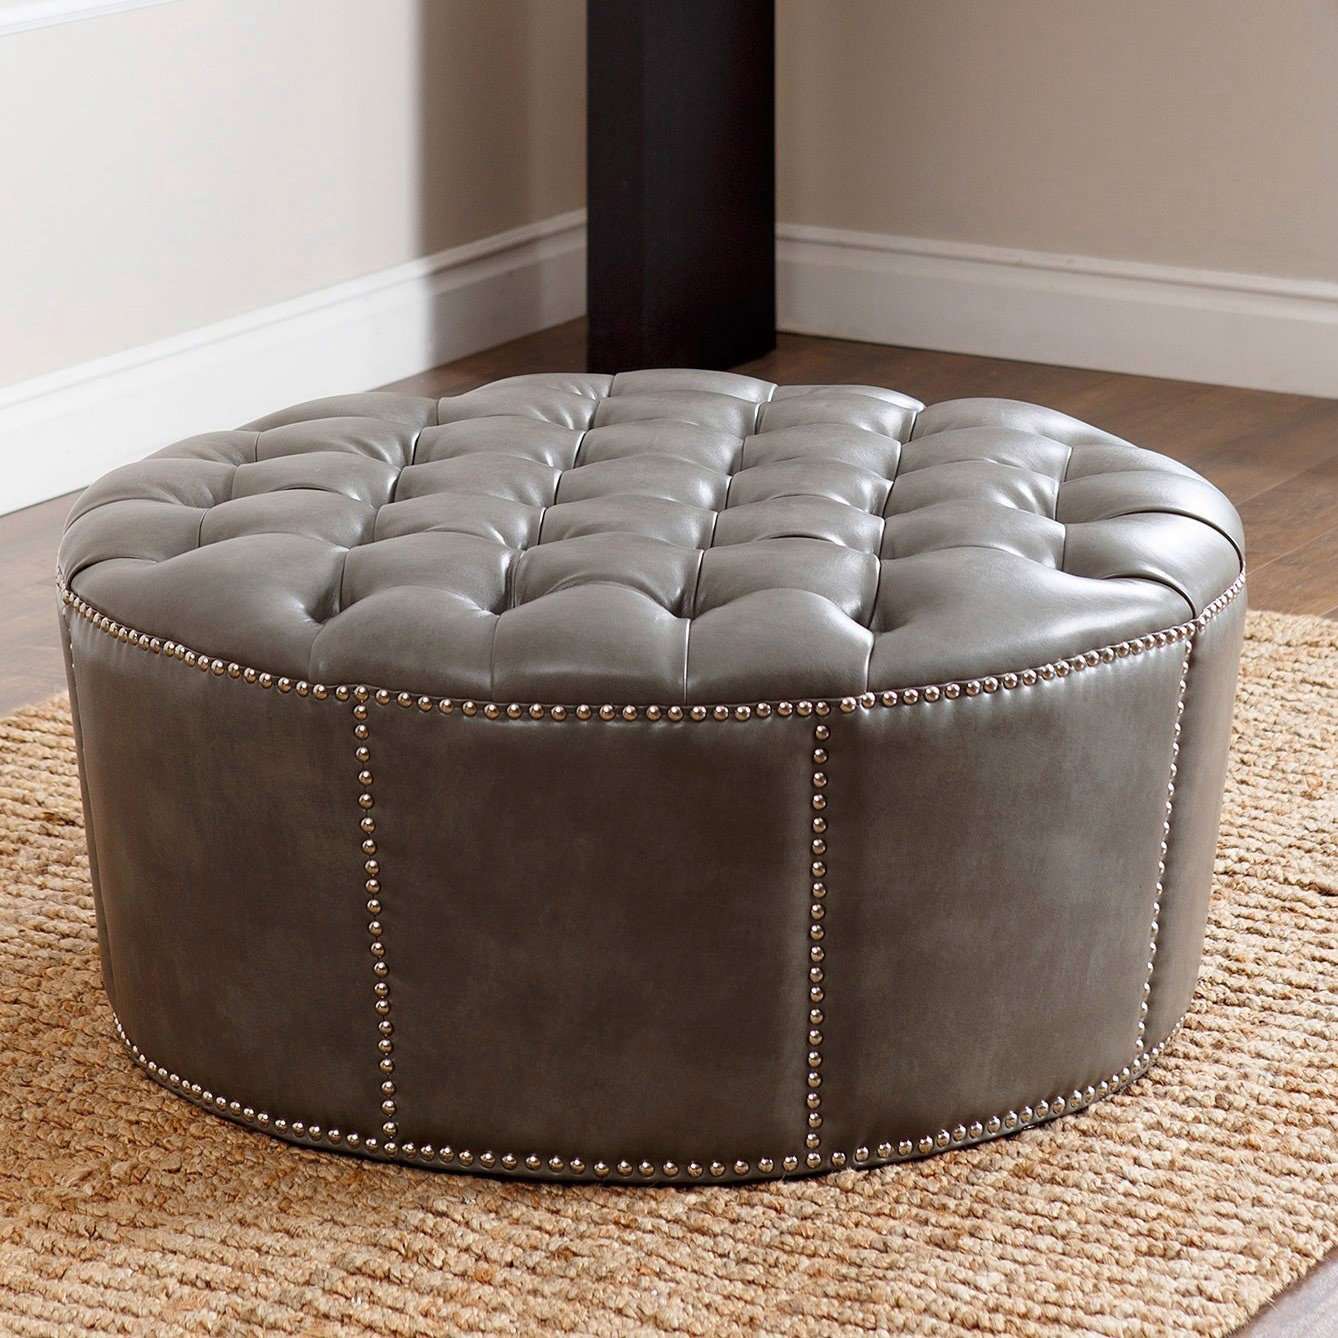 amazoncom leather ottoman nailhead trim round newport grey kitchen u0026 dining